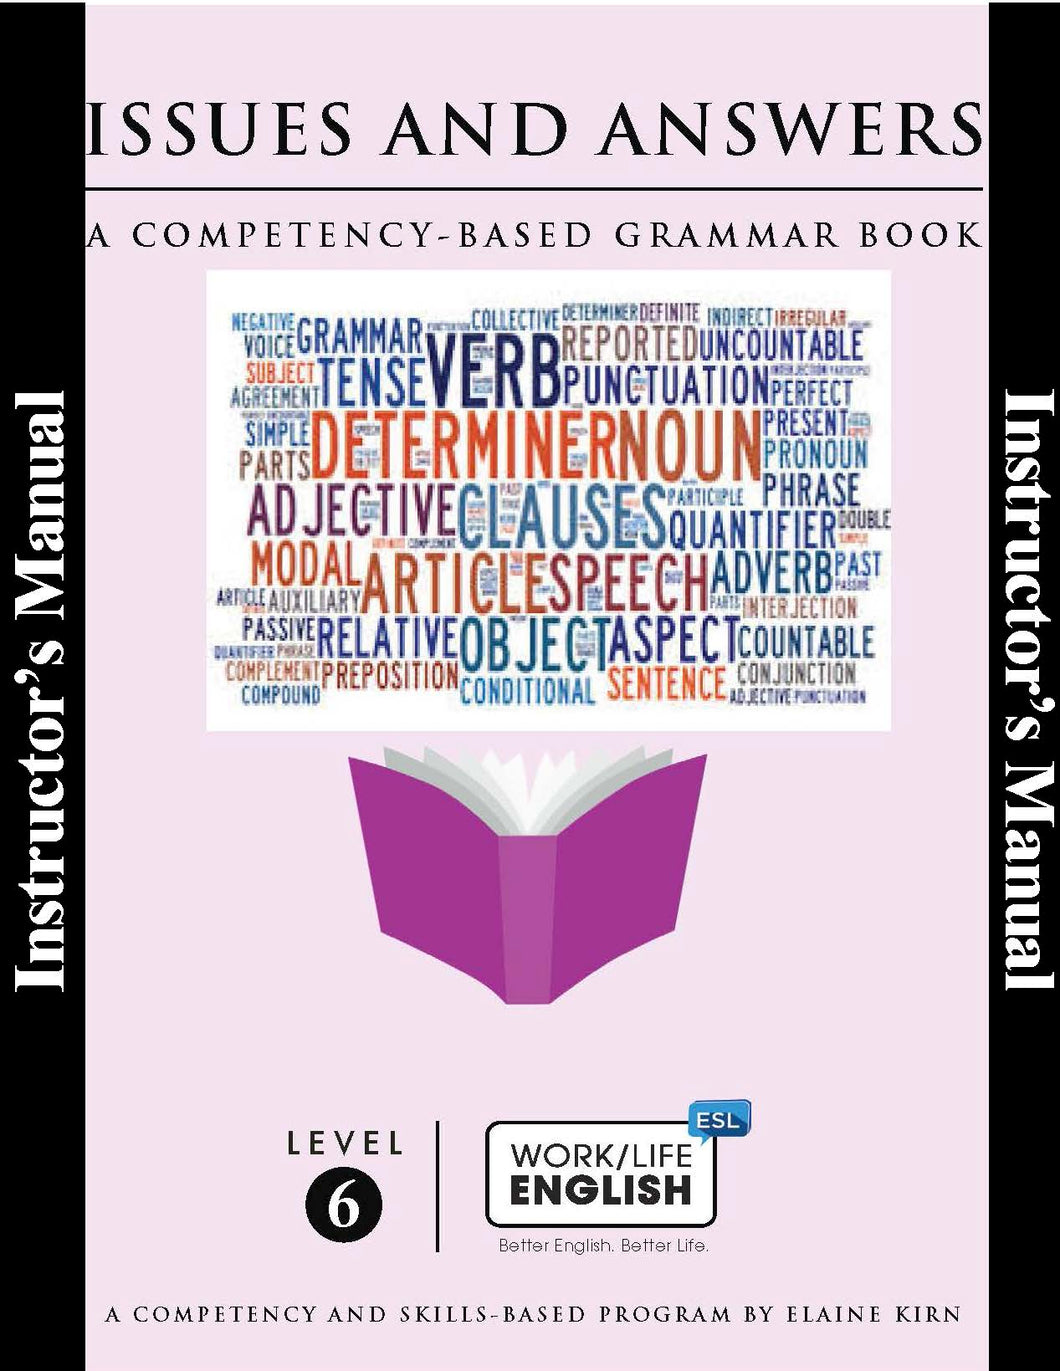 Grammar<br/>Work/Life English Level 6 Instructor's Annotated Edition